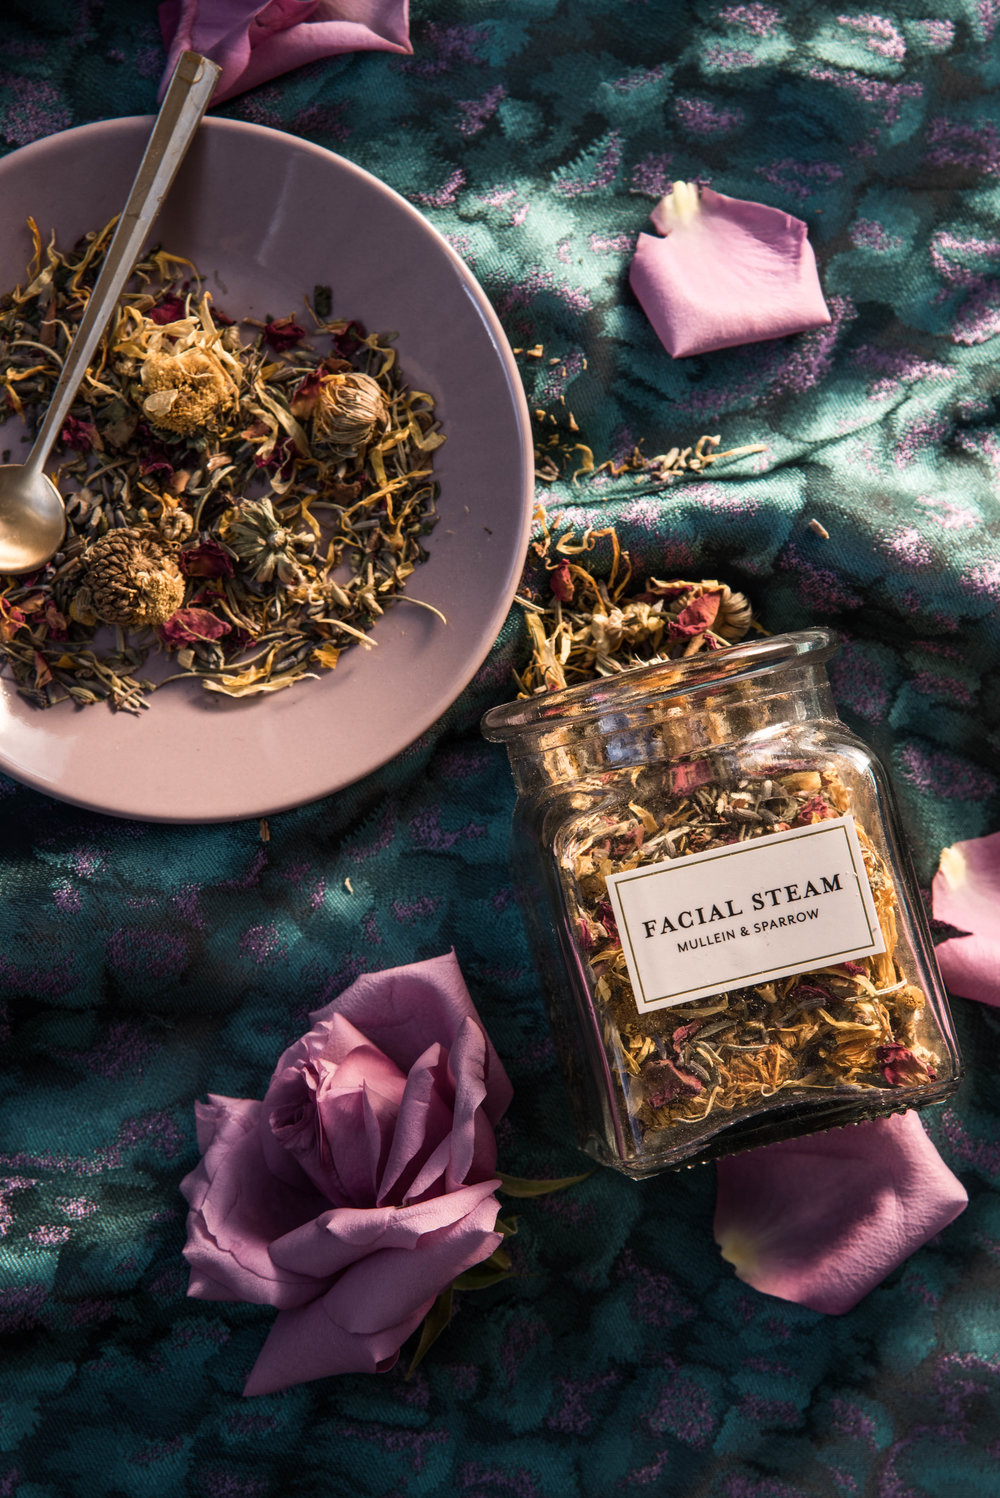 ROSE & IVY Journal Gift Guide The Mood Dark Florals Mullein & Sparrow Facial Steam